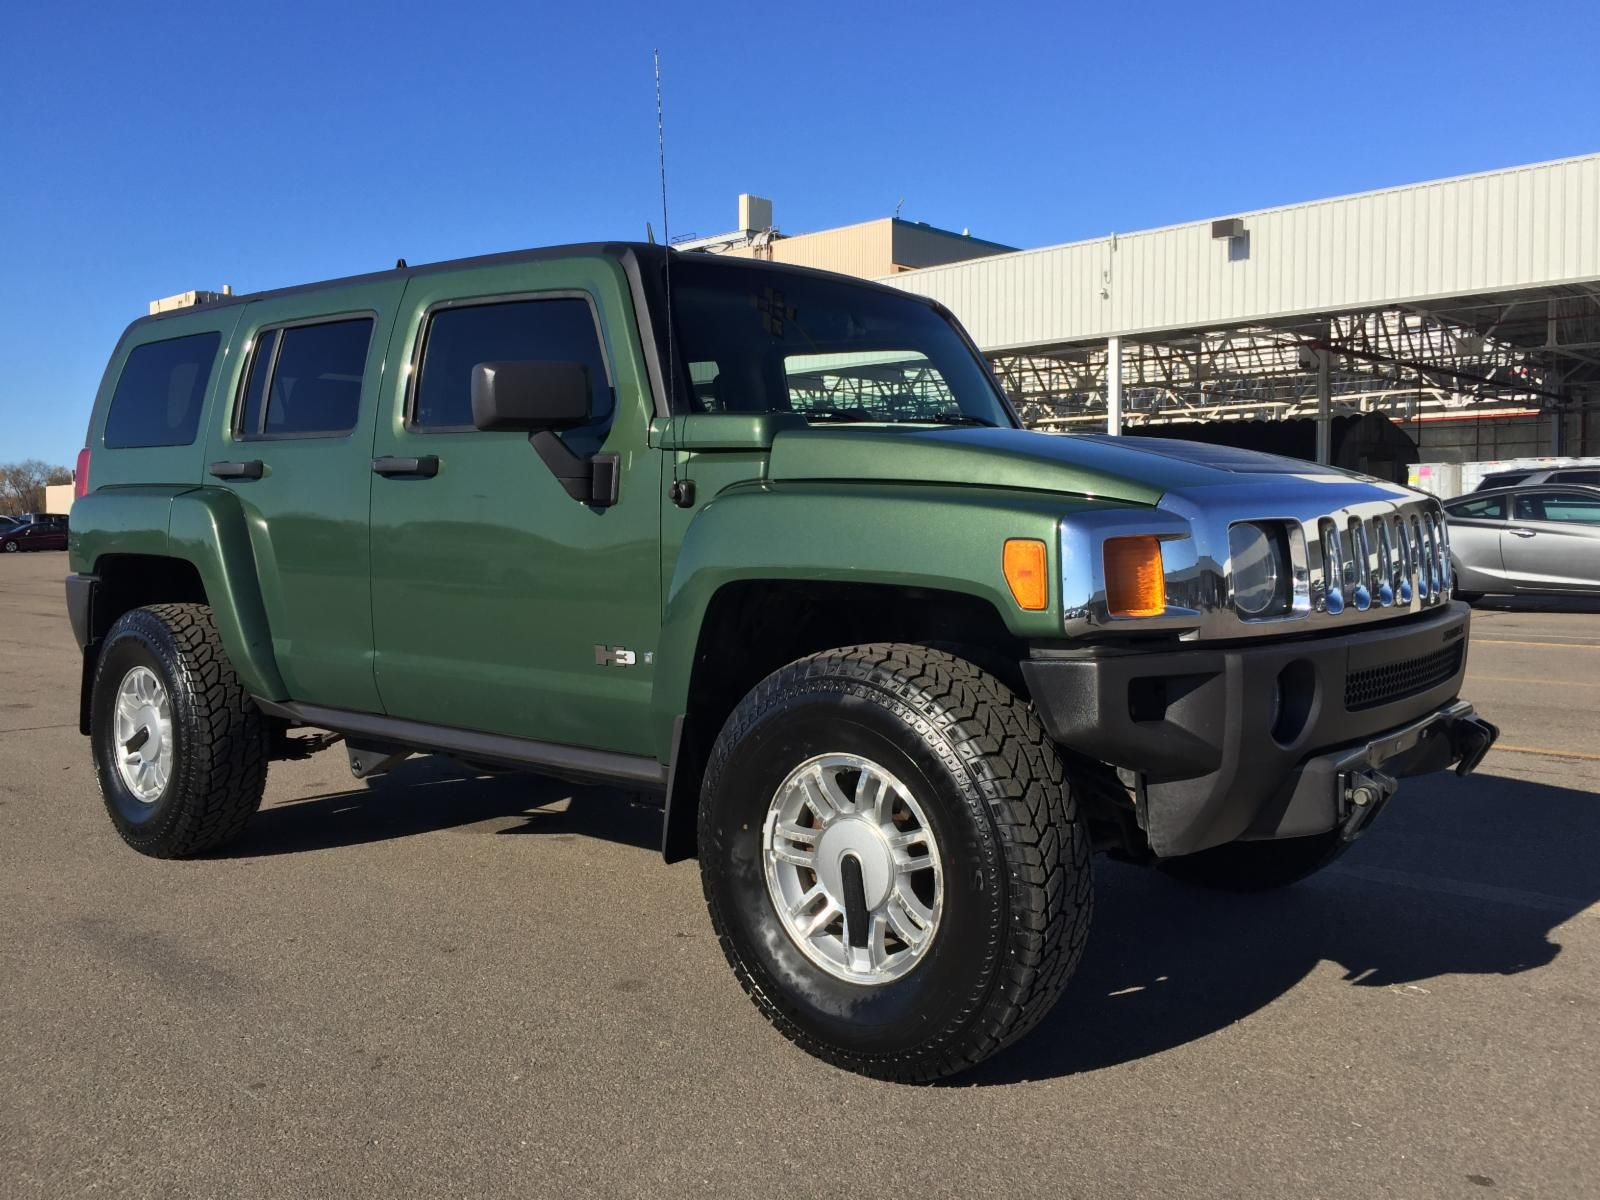 2006 Hummer H3 Hummer Forums Enthusiast Forum for Hummer Owners